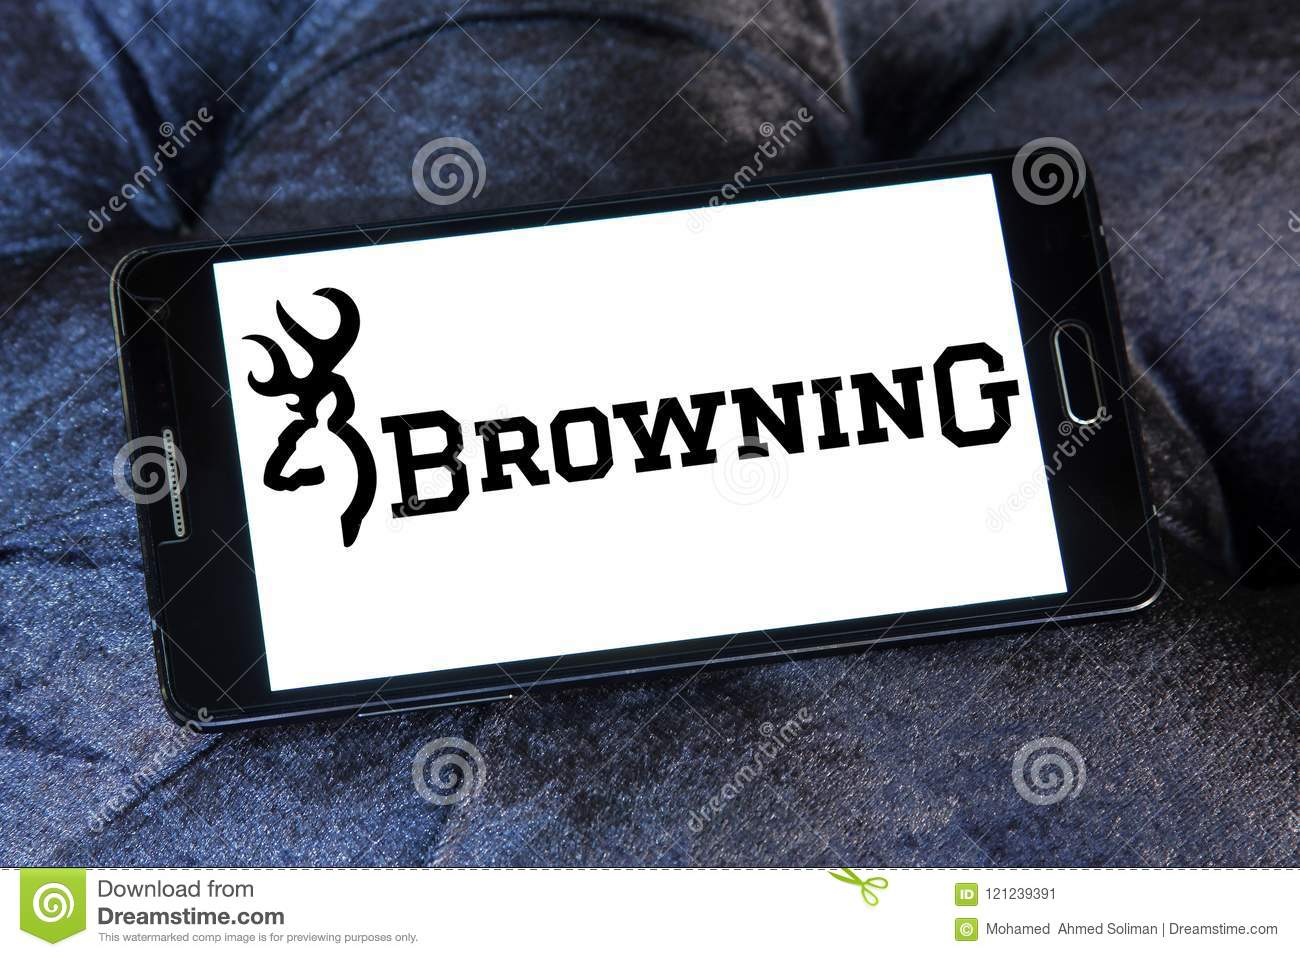 Browning arms company logo editorial image. Image of knives.